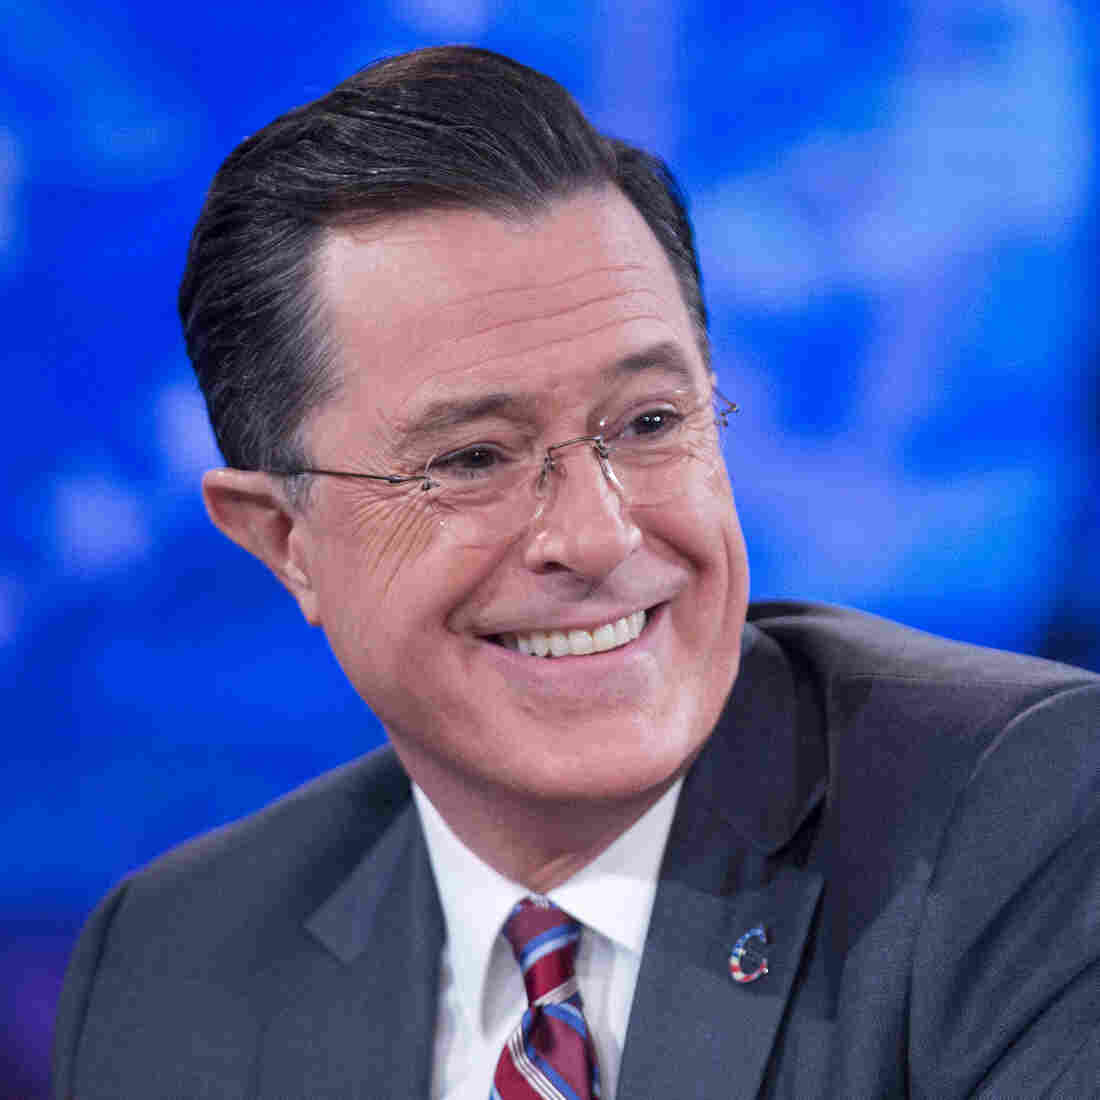 A Tribute To Stephen Colbert, A Self-Proclaimed 'Junkie For Exhaustion'